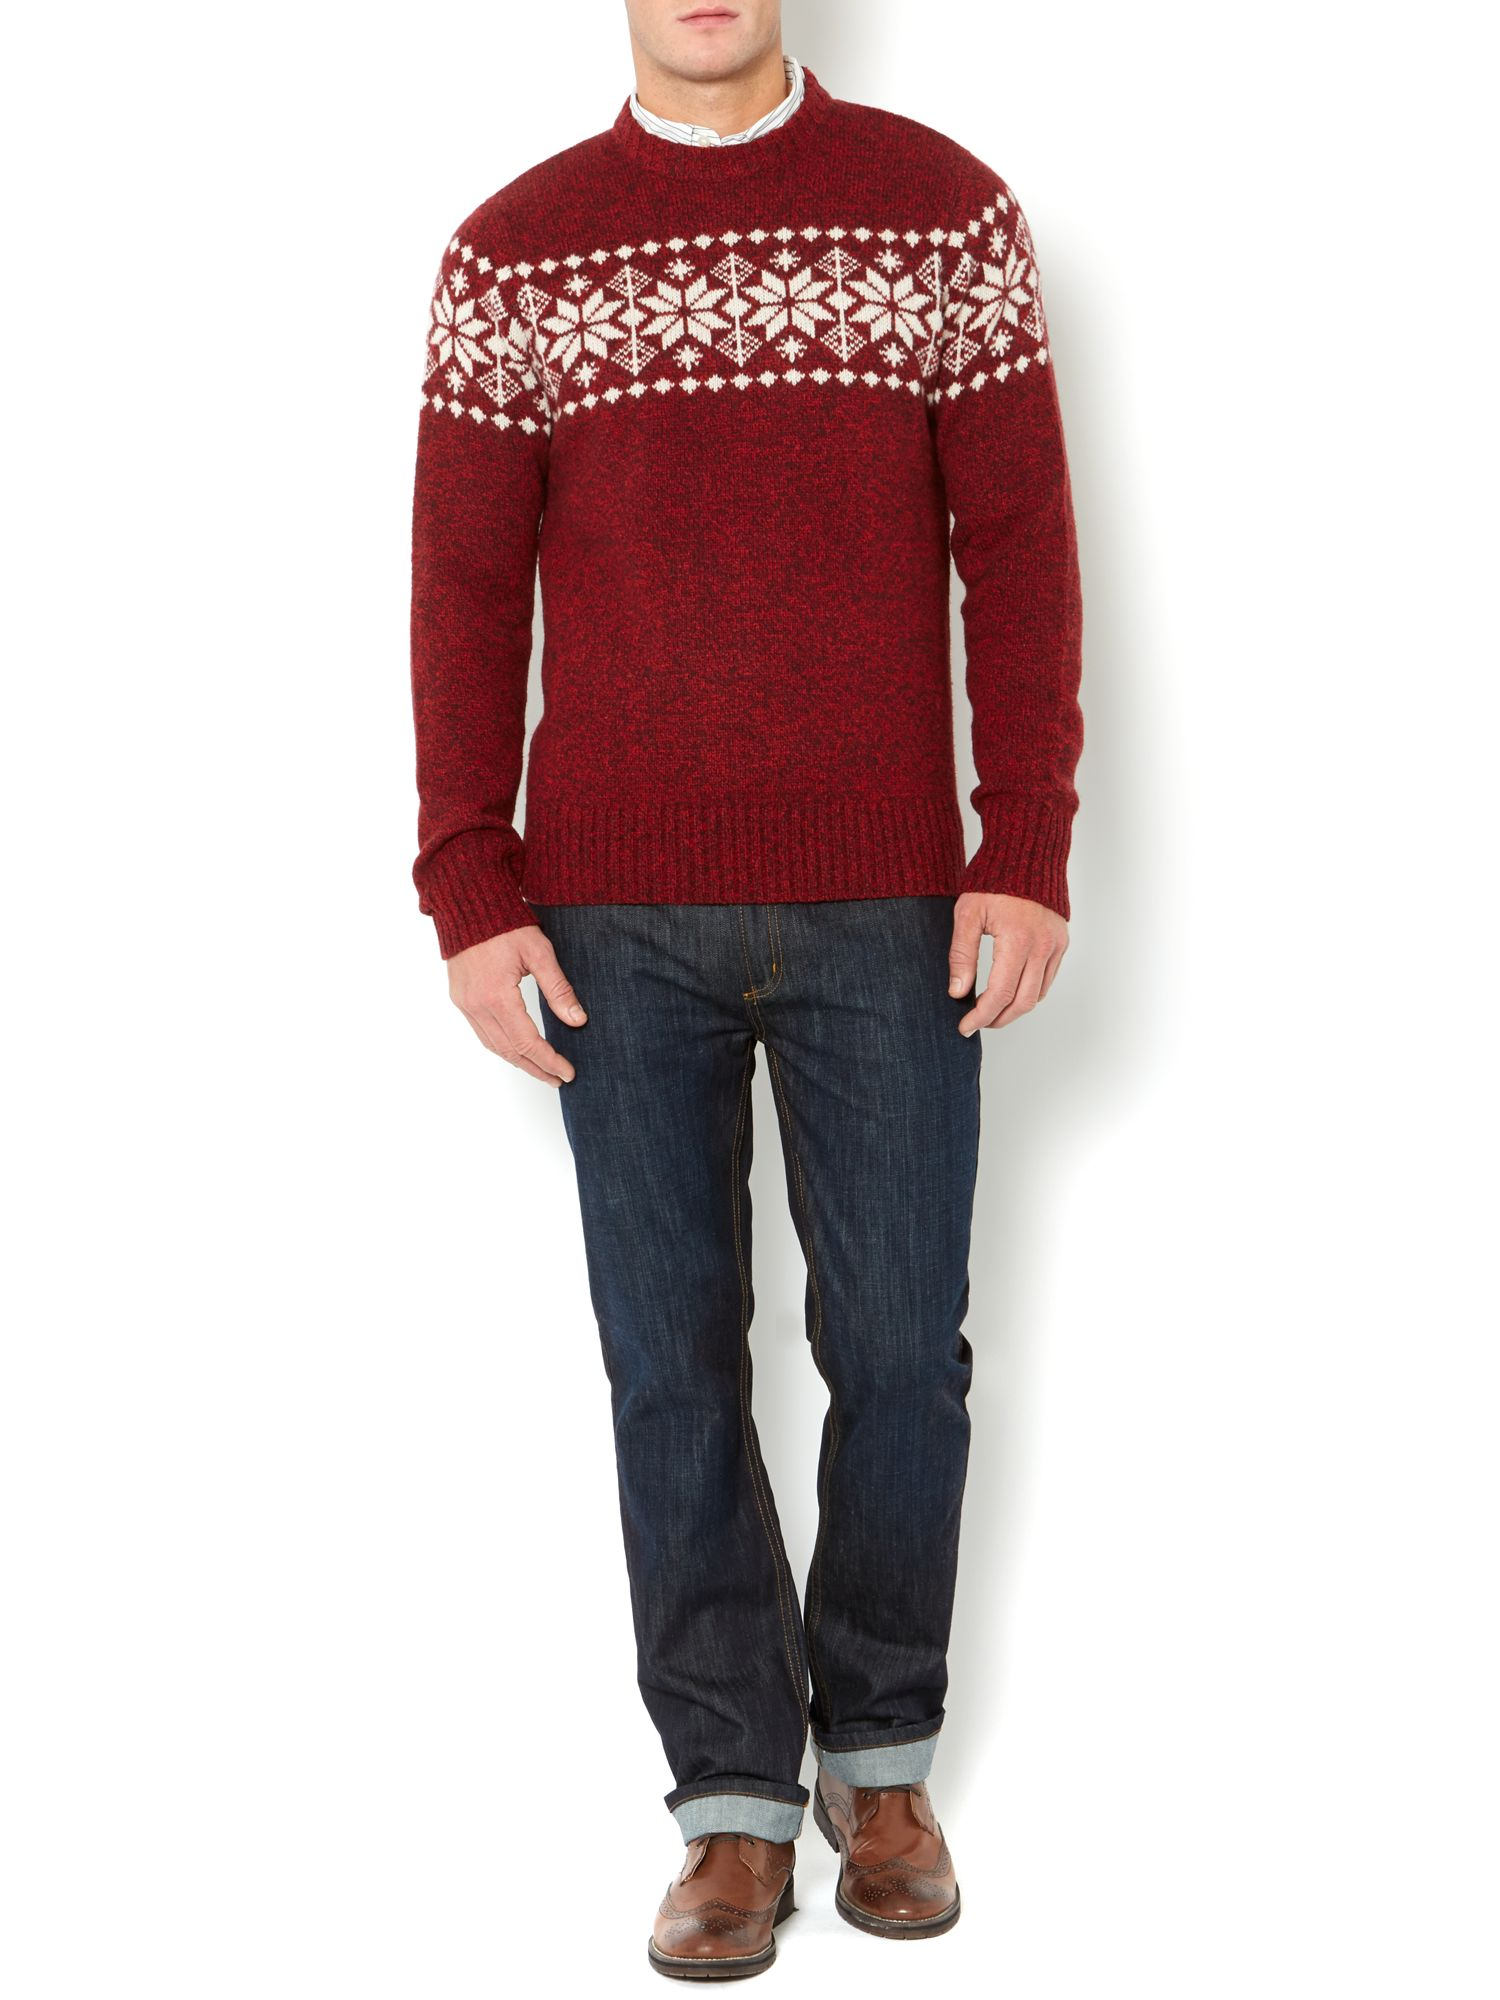 Lapland crew neck lambswool jumper